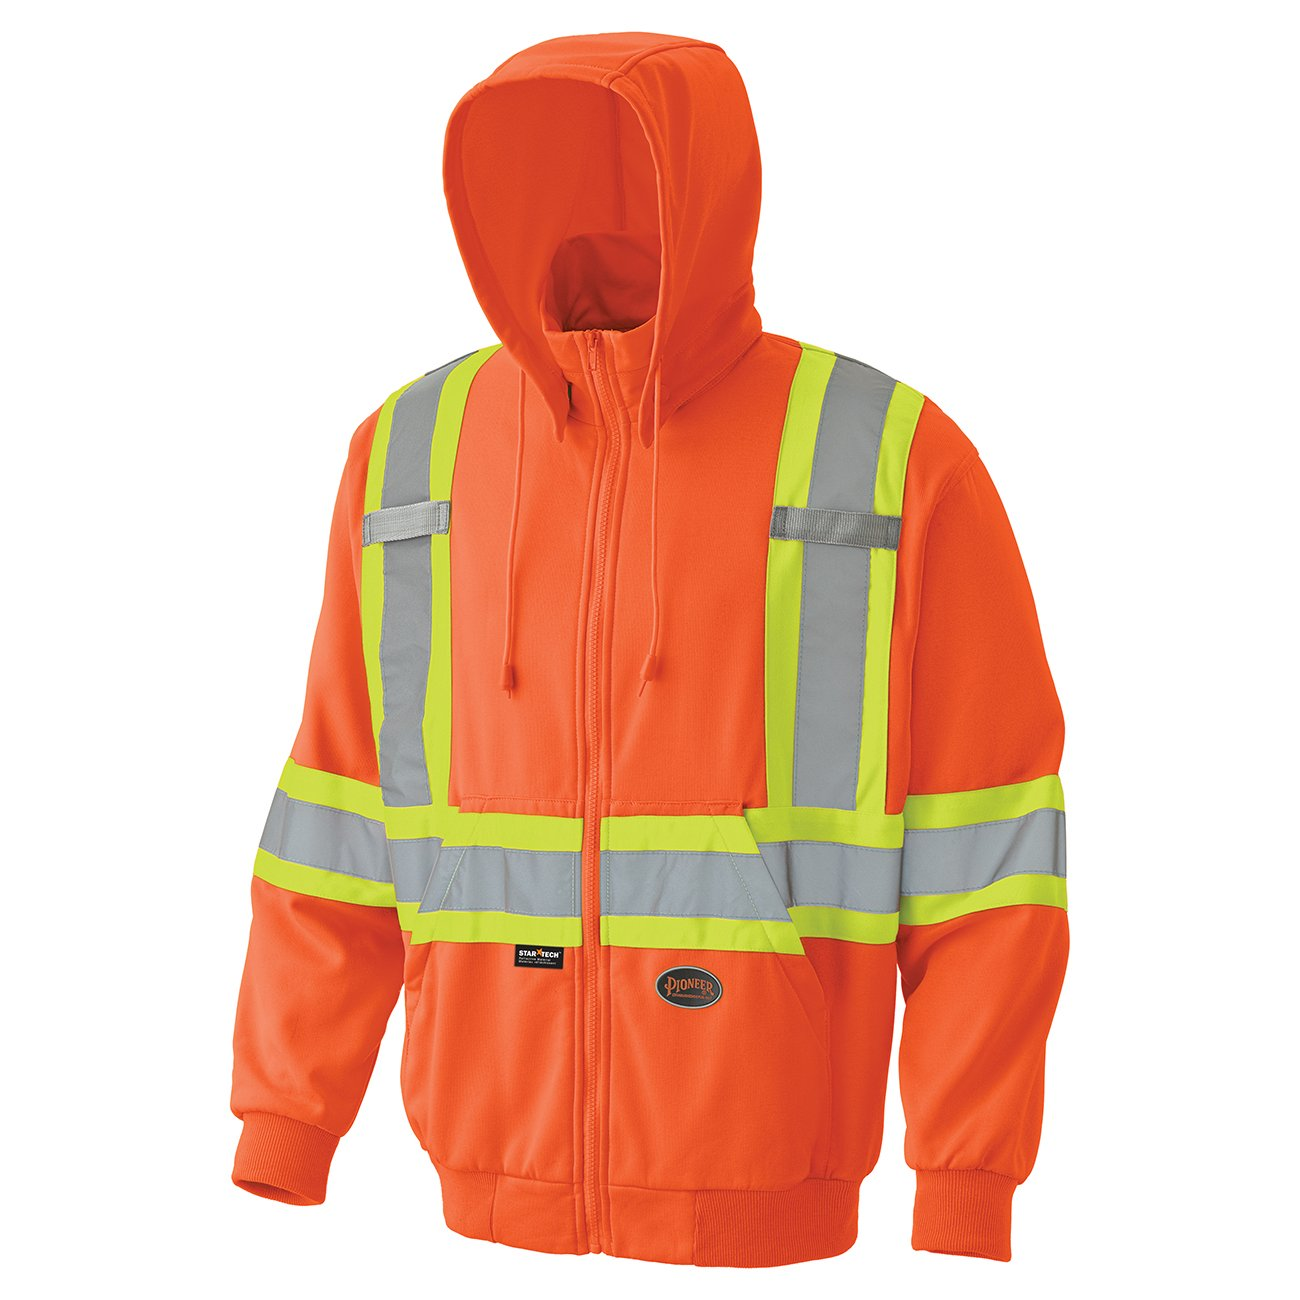 Pioneer V1060560-L High Visibility Safety Hoodie, Micro Fleece, Yellow-Green, L